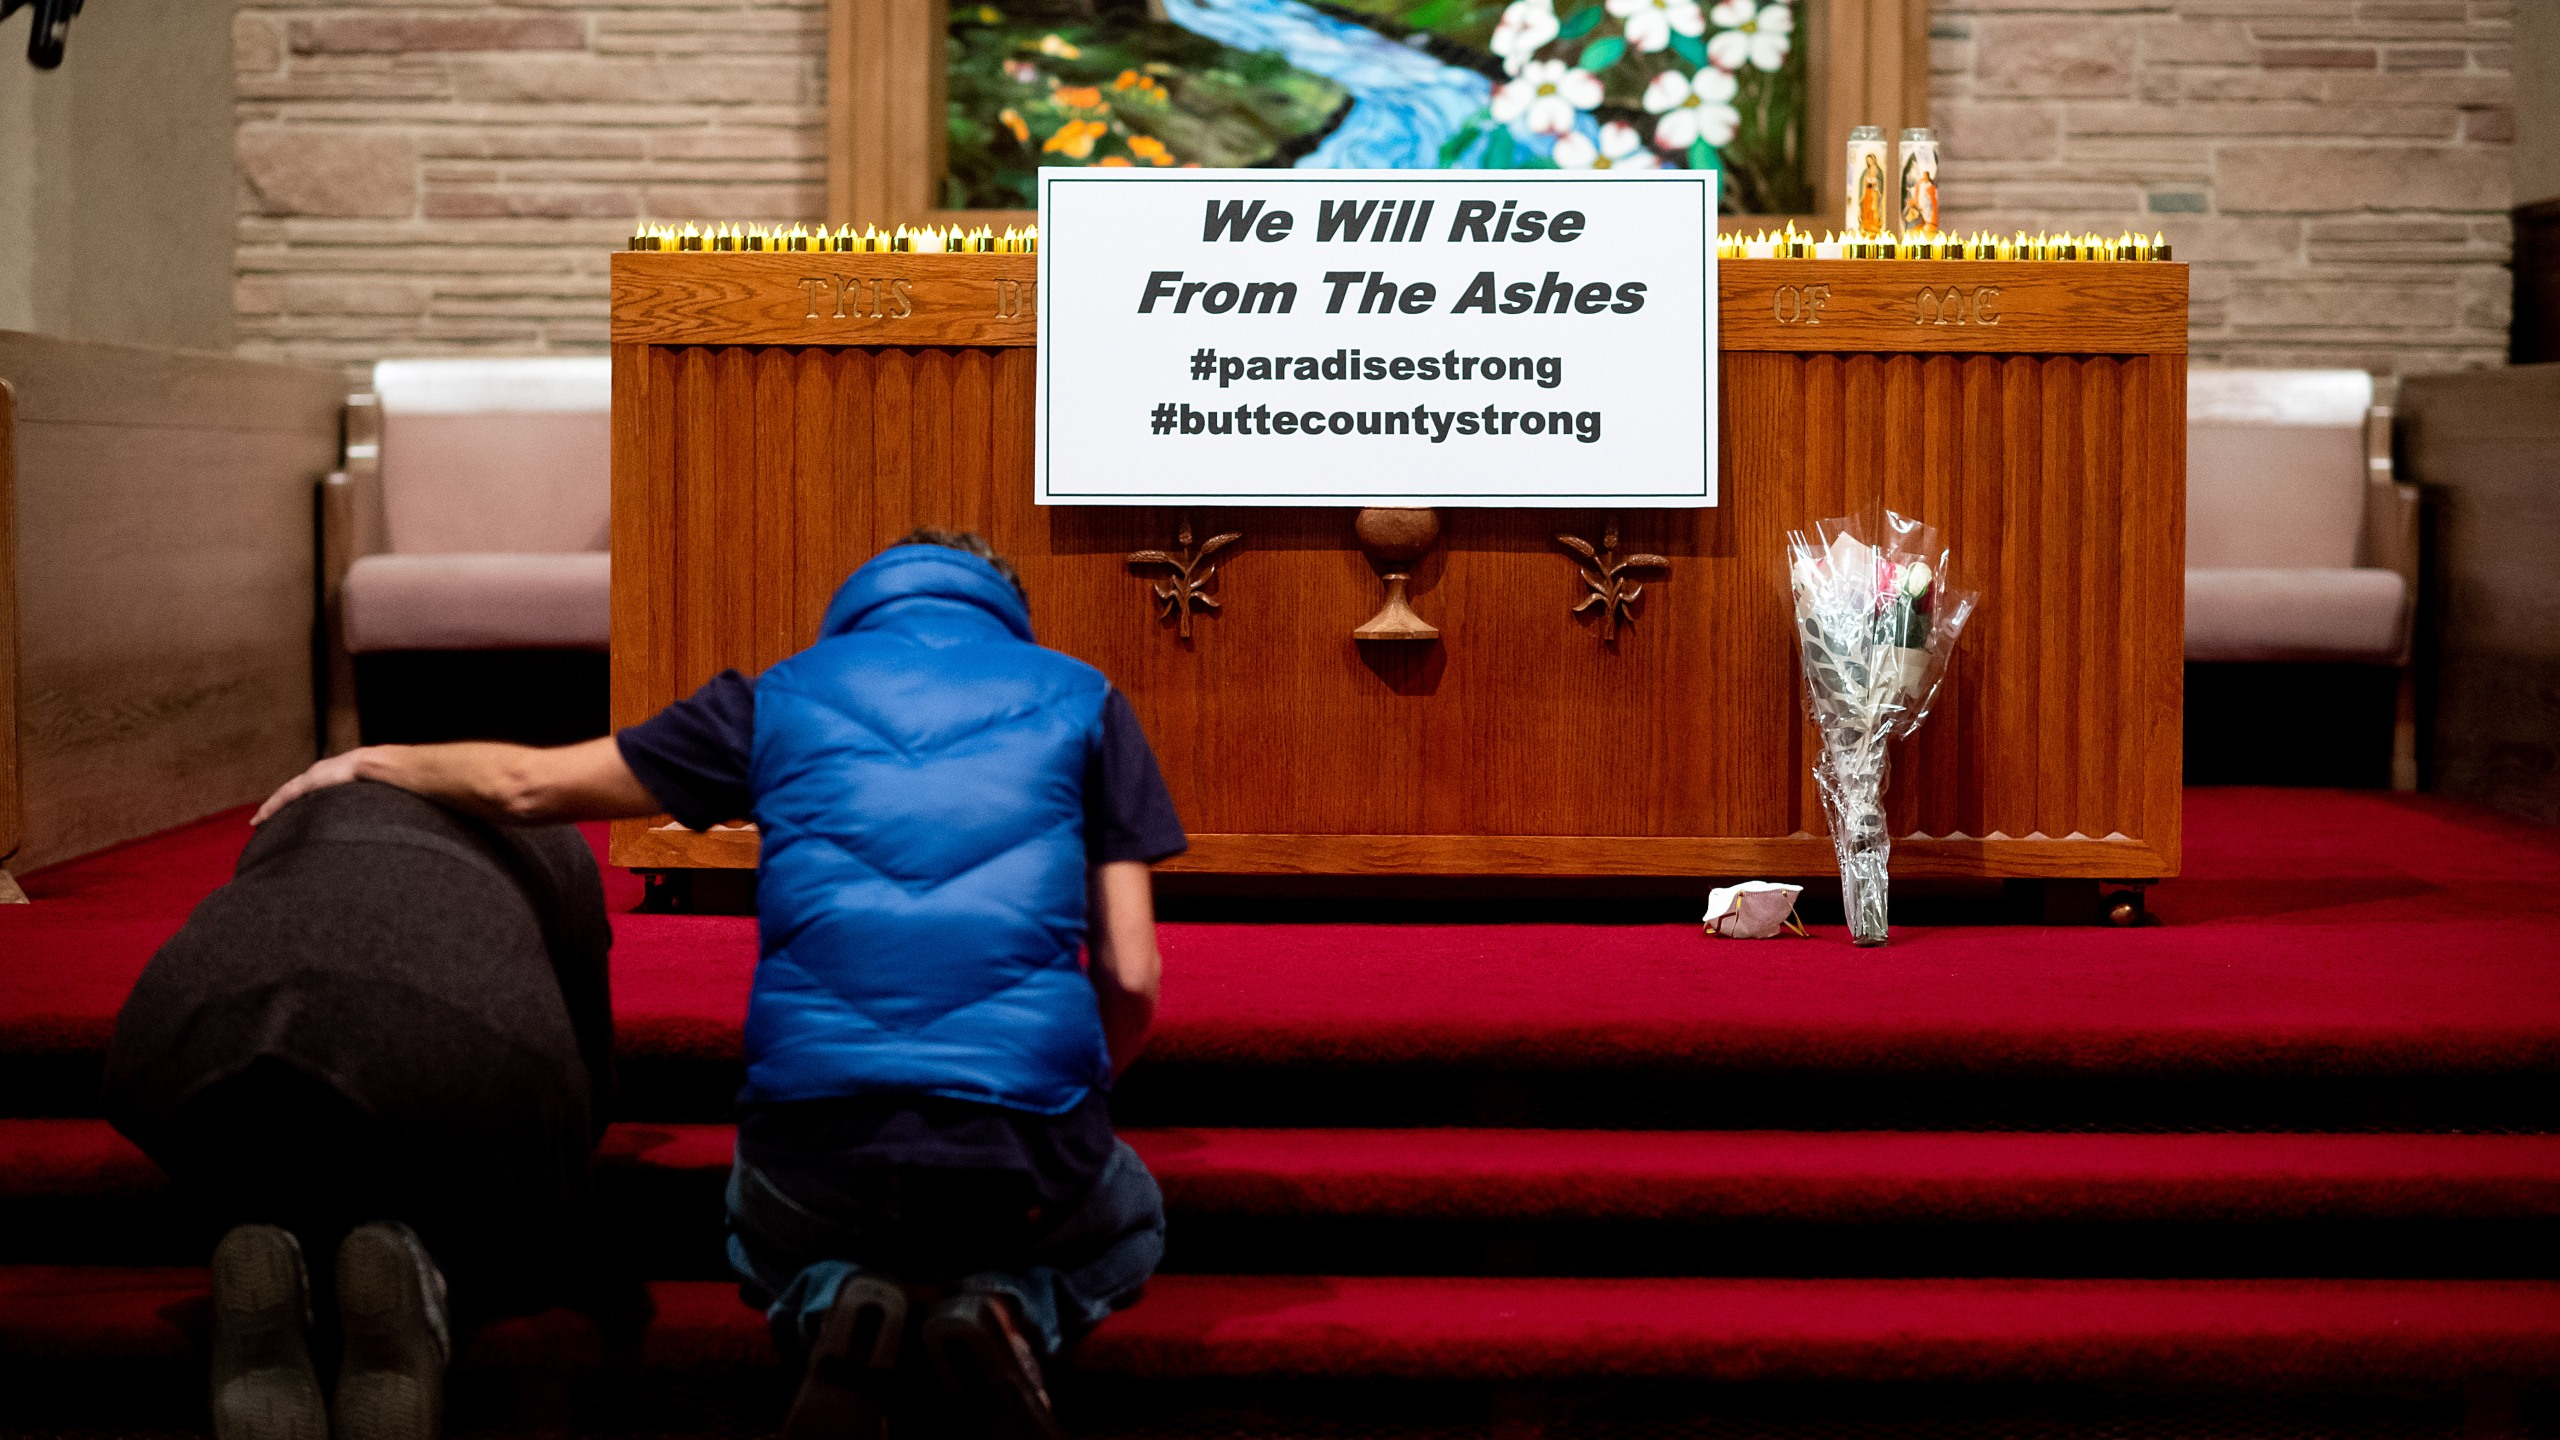 Mourners pray during a vigil for Camp Fire victims at the First Christian Church of Chico on Nov. 18, 2018, in Chico, Calif. (Credit: Noah Berger-Pool/Getty Images)